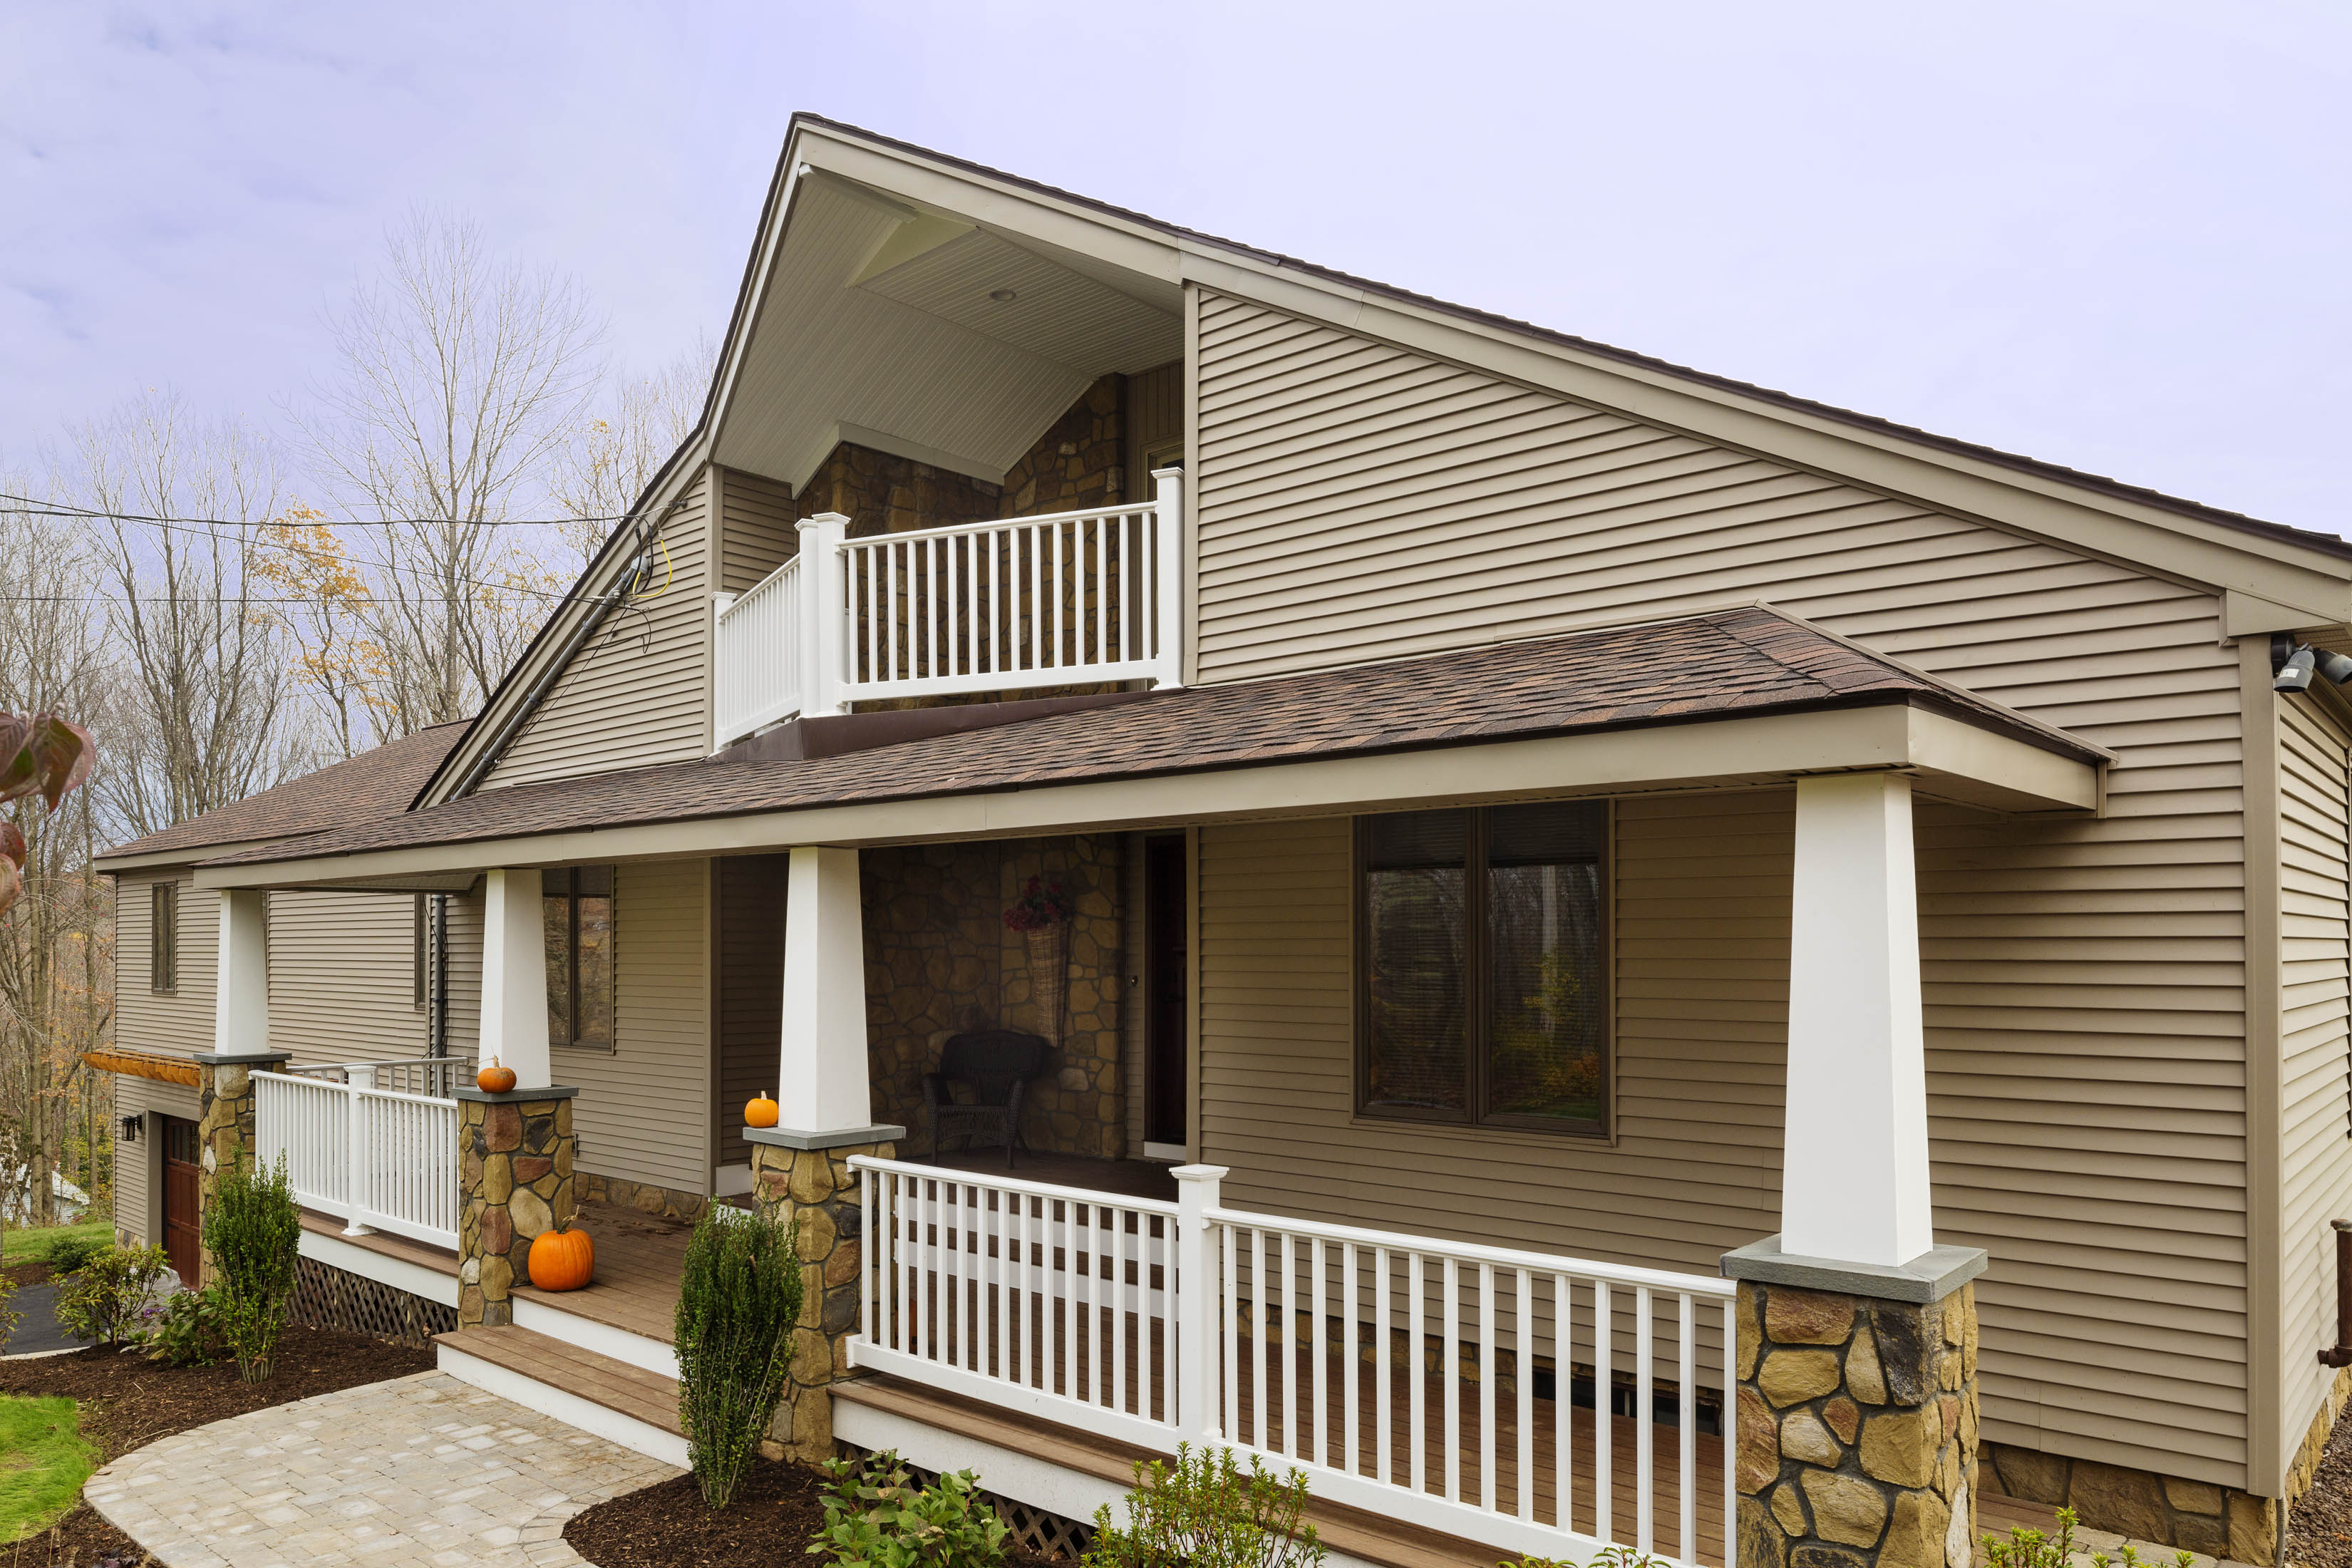 House with brown siding, stone pillars, and sloped roof